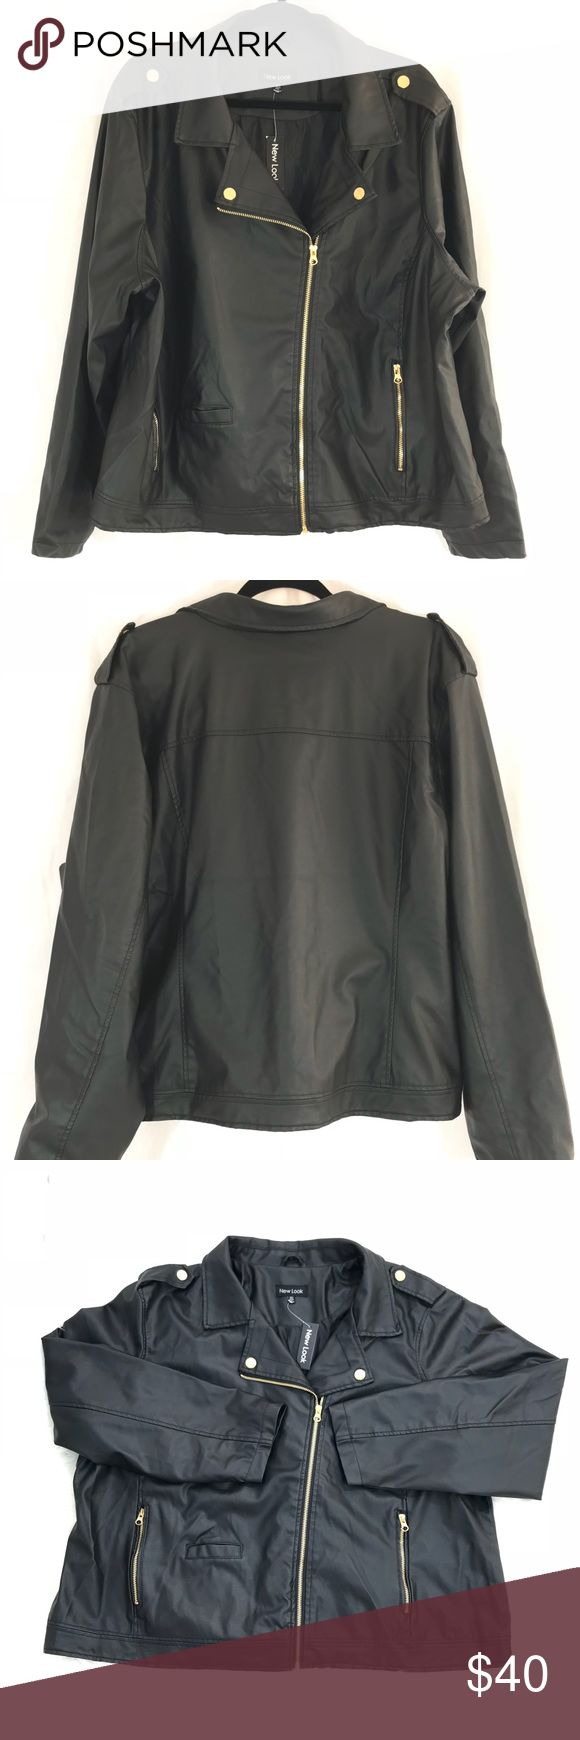 A48 - New Look Black Faux Leather Jacket 3X New Look Black Faux Leather Jacket 3X Gold hardware  Armpit to armpit laying flat - 27 inch Collar to bottom length - 28 inch New Look Jackets & Coats